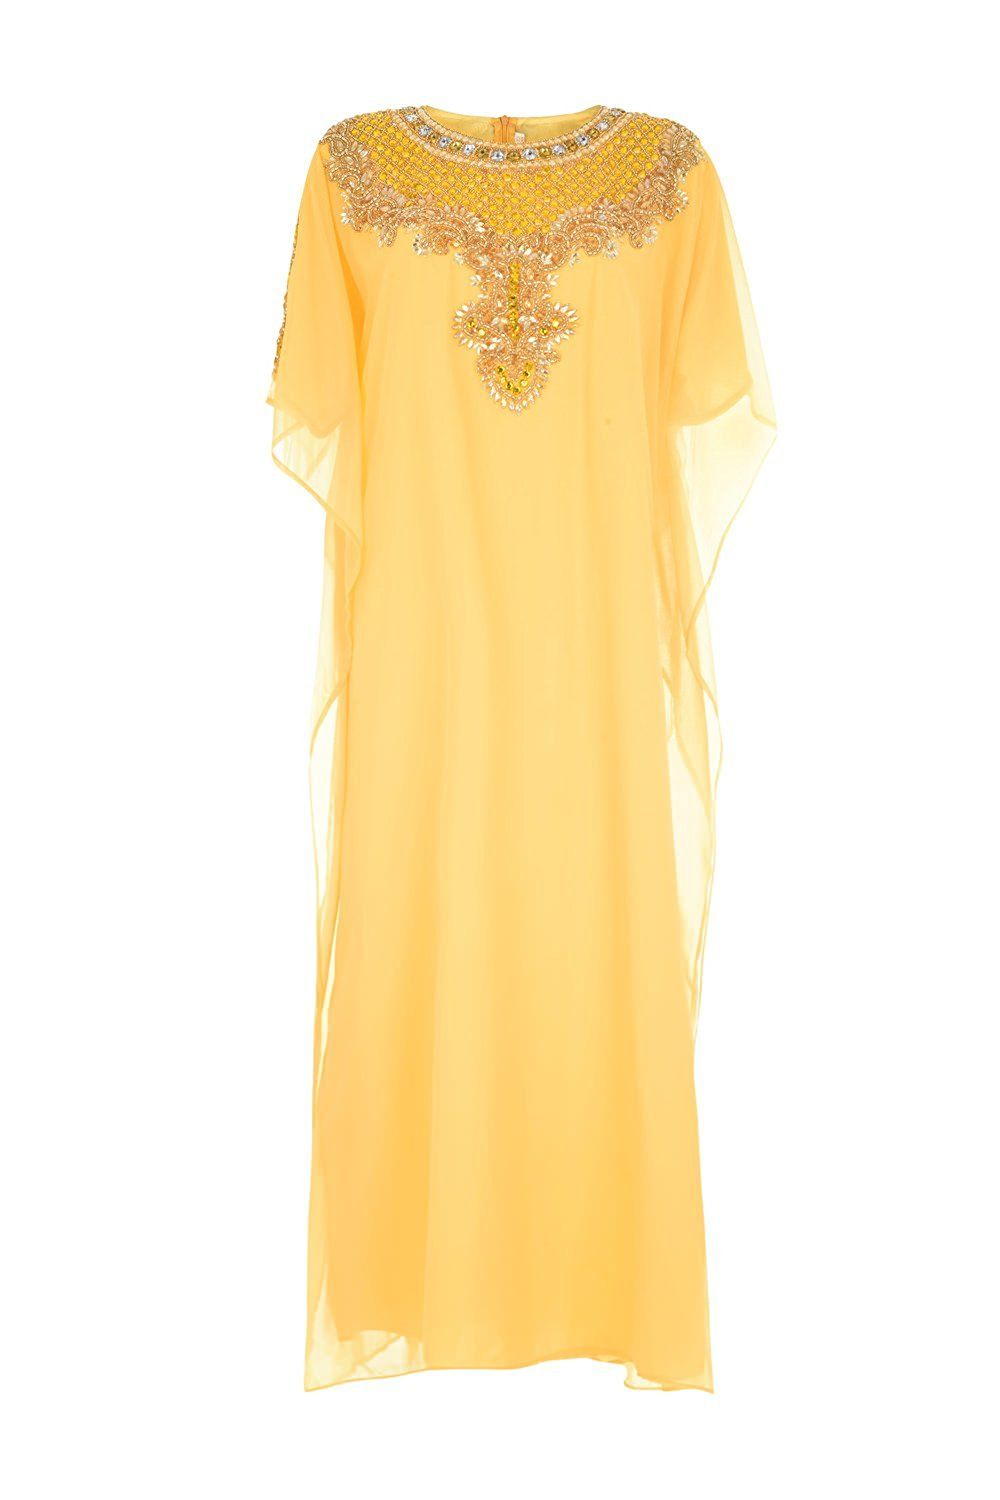 Fenghuavip womenus arab style chiffon half sleeve yellow long